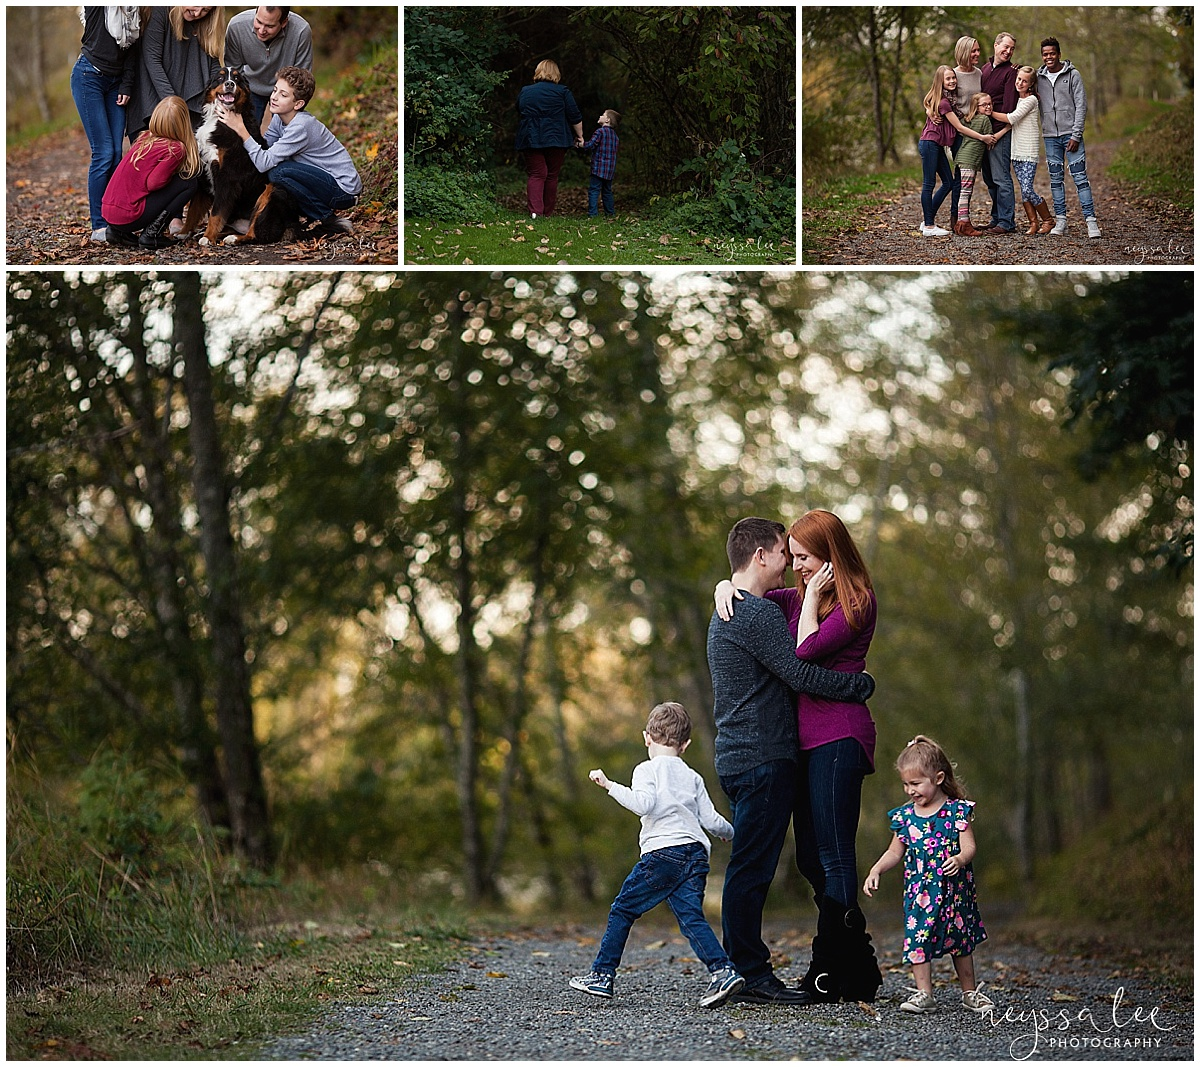 Favorite Locations for Fall Family Photos around Seattle, Neyssa Lee Photography, Snoqualmie Family Photographer,  Tolt McDonald Park, Leaves